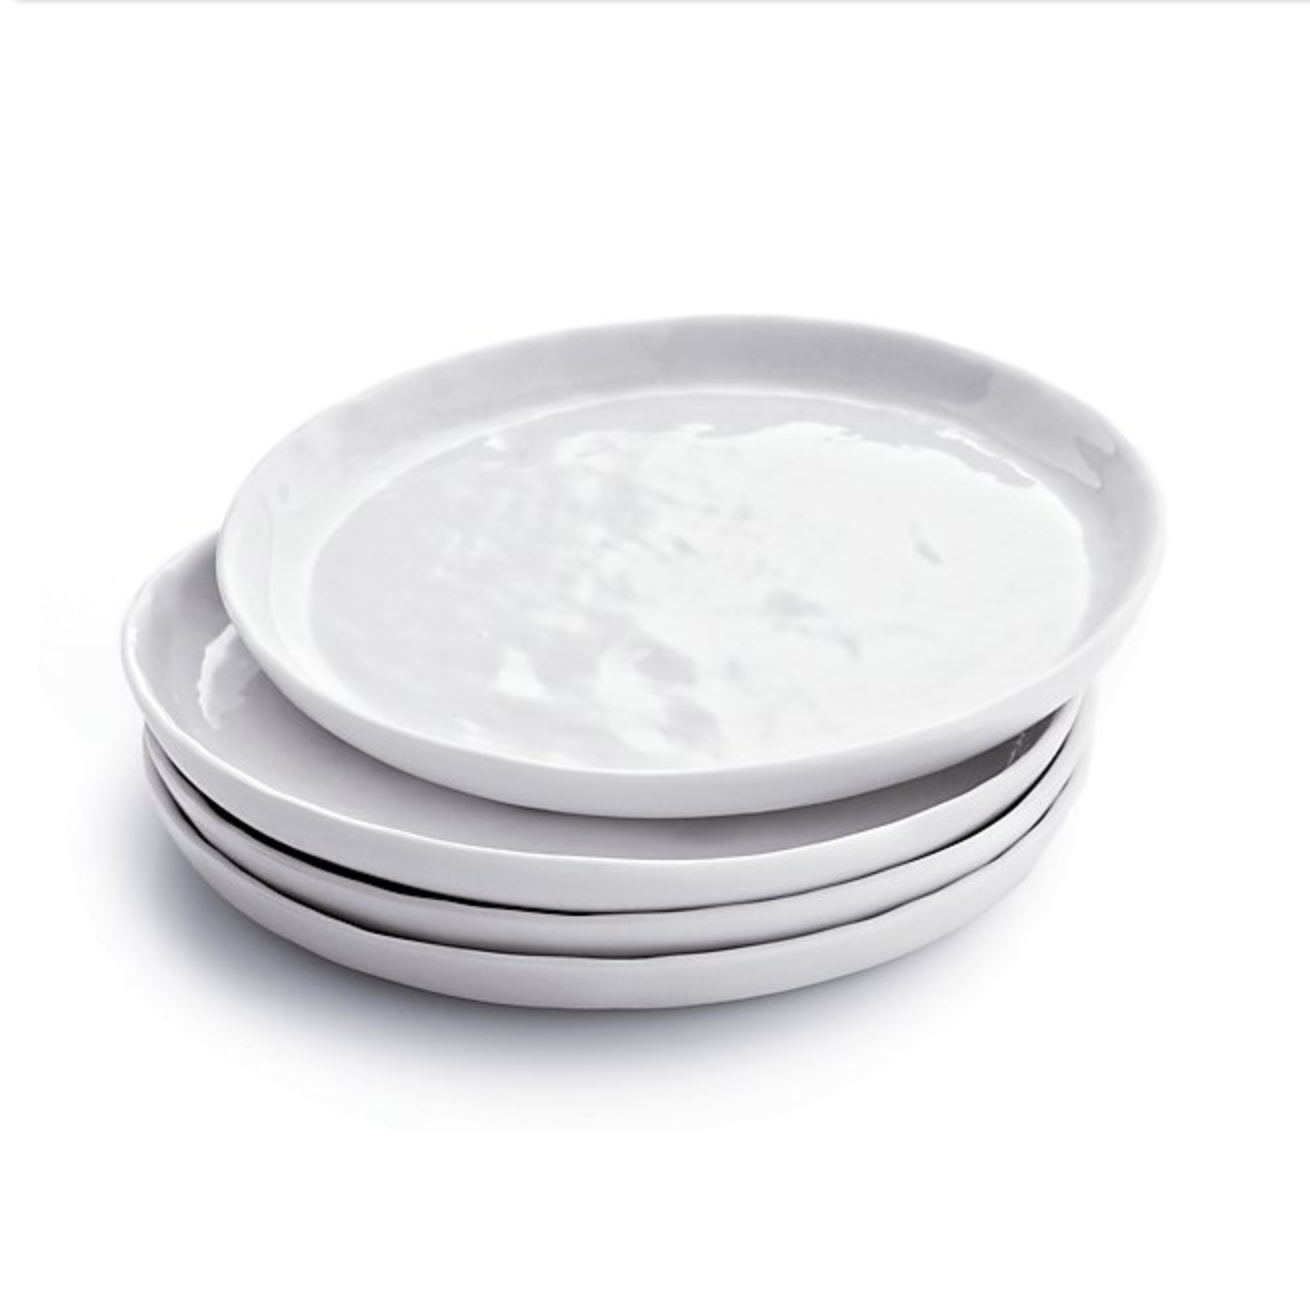 Crate & Barrel Mercer Salad Plate